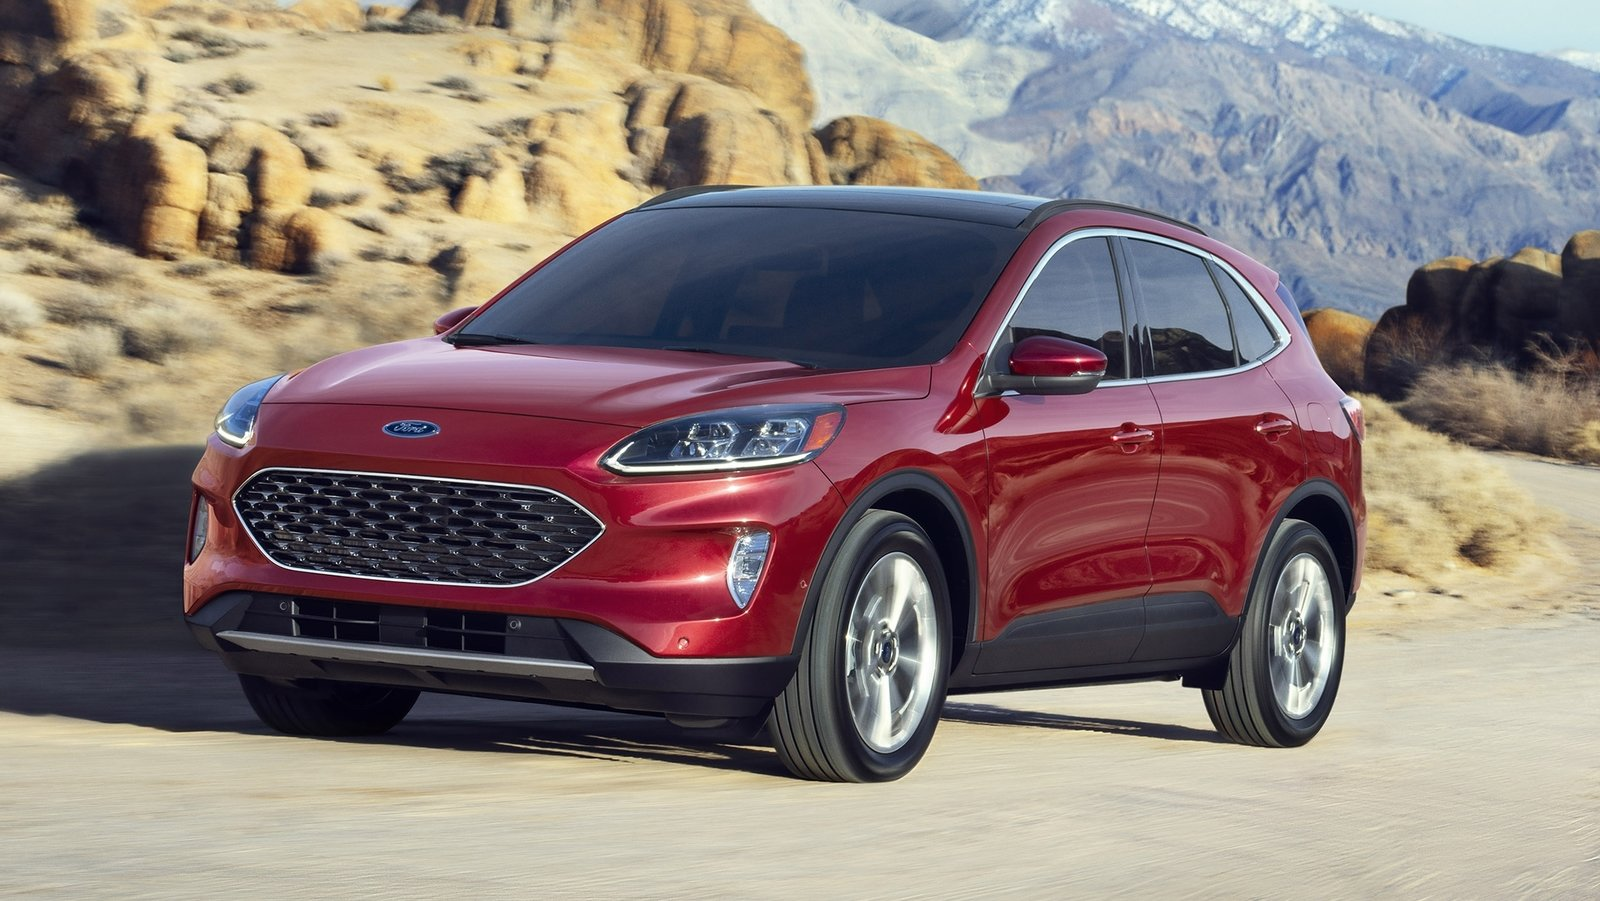 2020 Ford Escape Quirks And Features | Top Speed